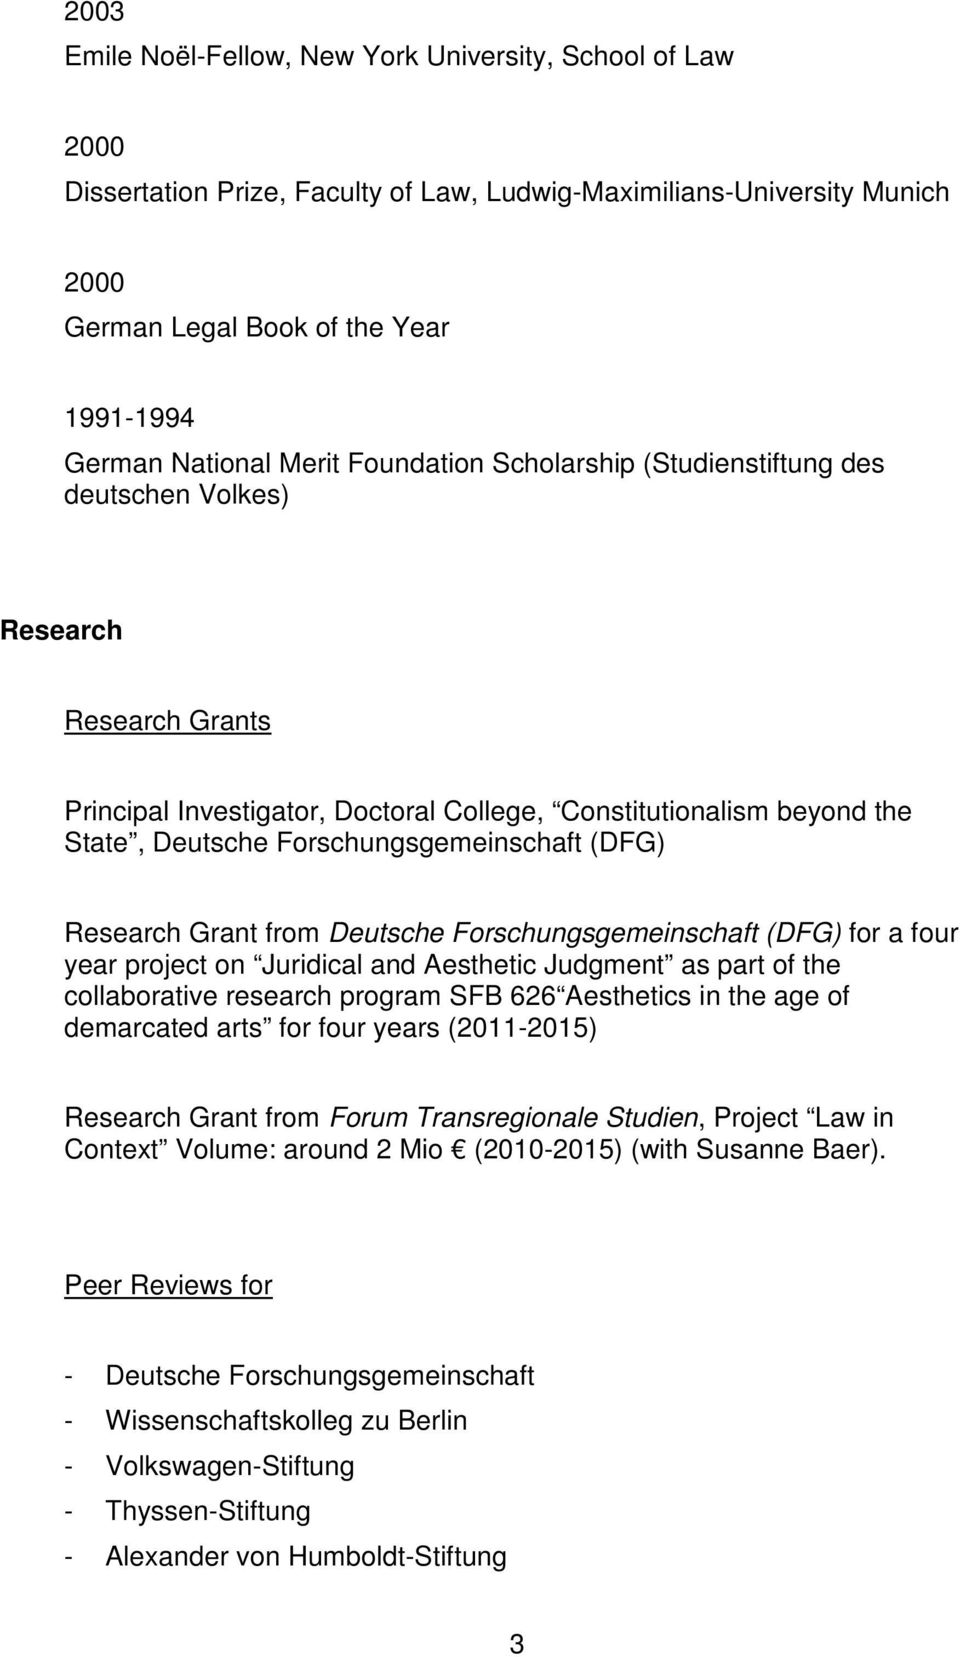 Forschungsgemeinschaft (DFG) Research Grant from Deutsche Forschungsgemeinschaft (DFG) for a four year project on Juridical and Aesthetic Judgment as part of the collaborative research program SFB